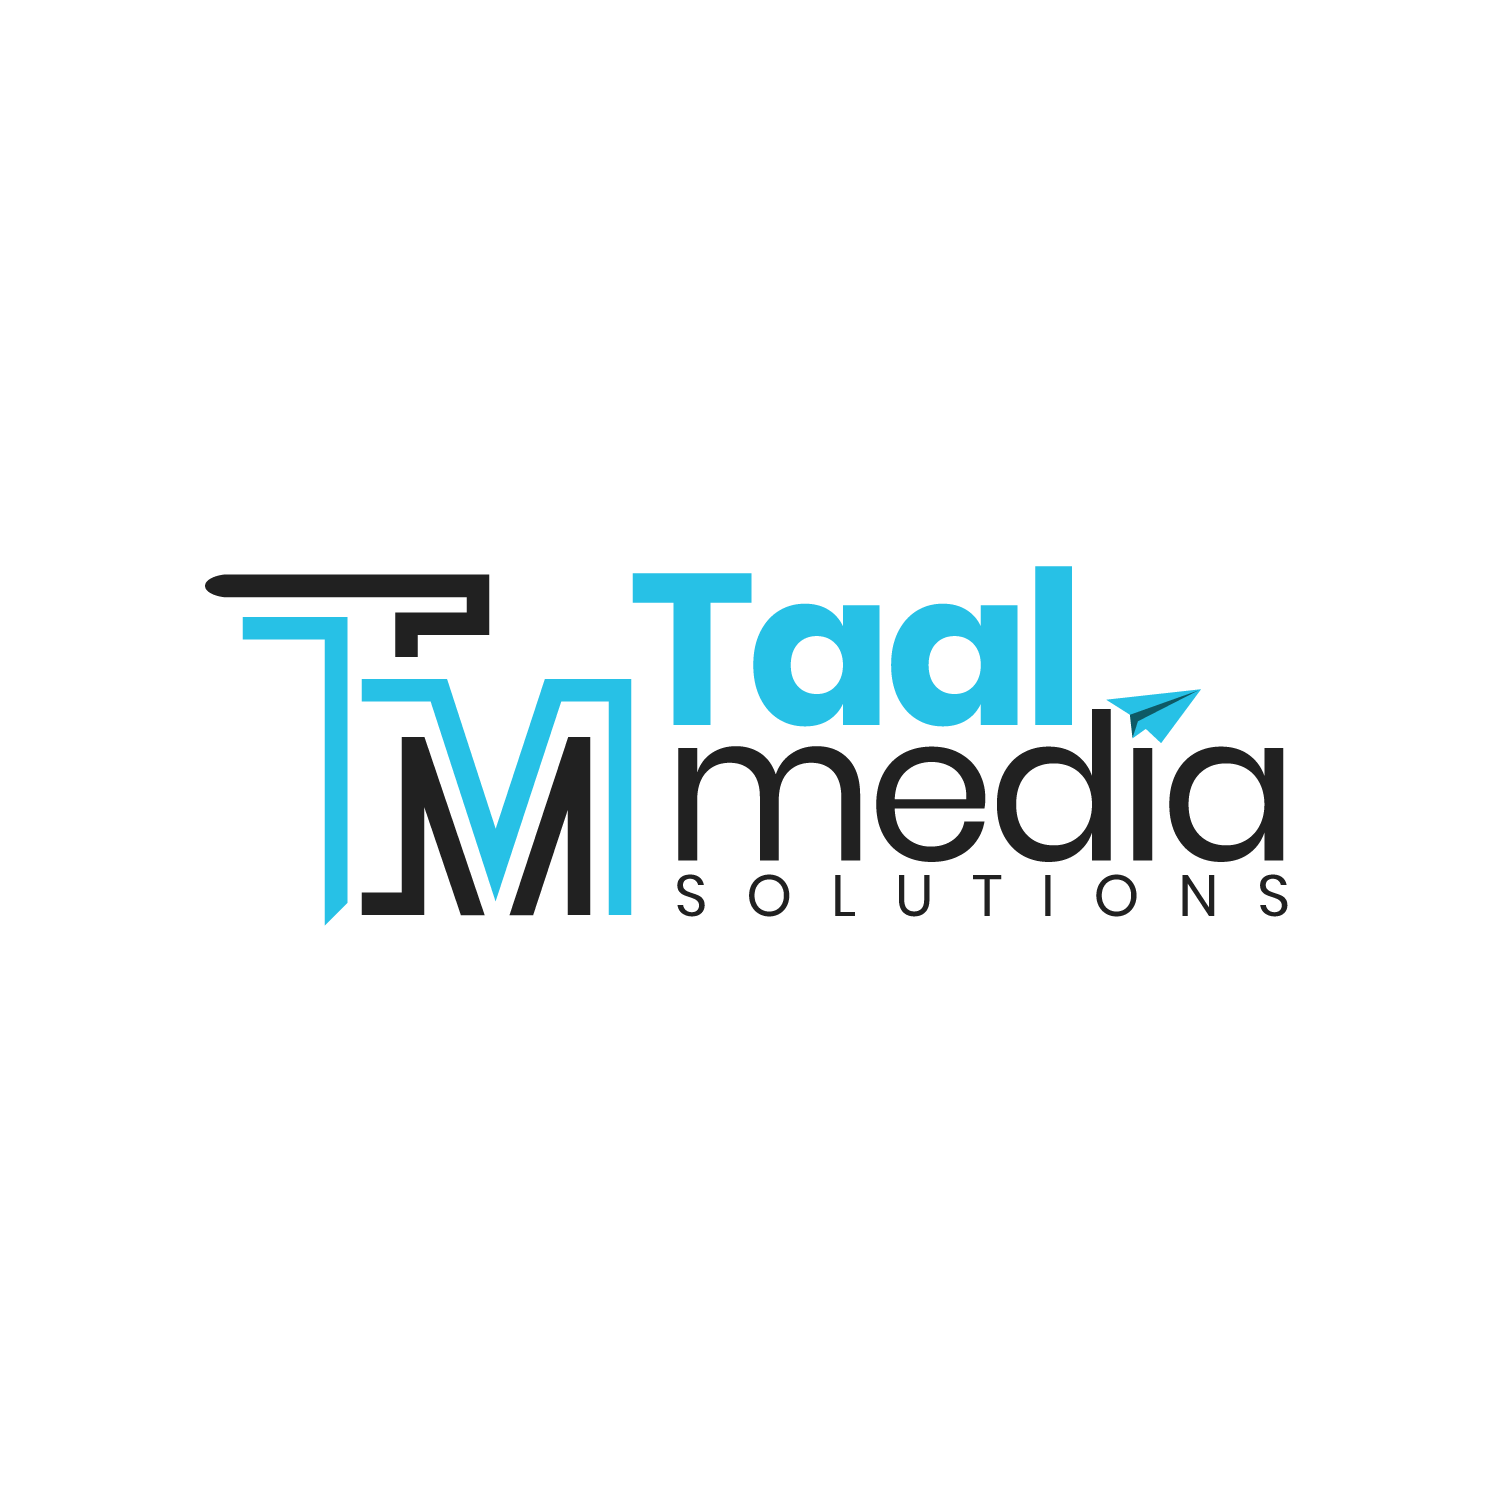 Taal Media | Complete Your Marketing Goal